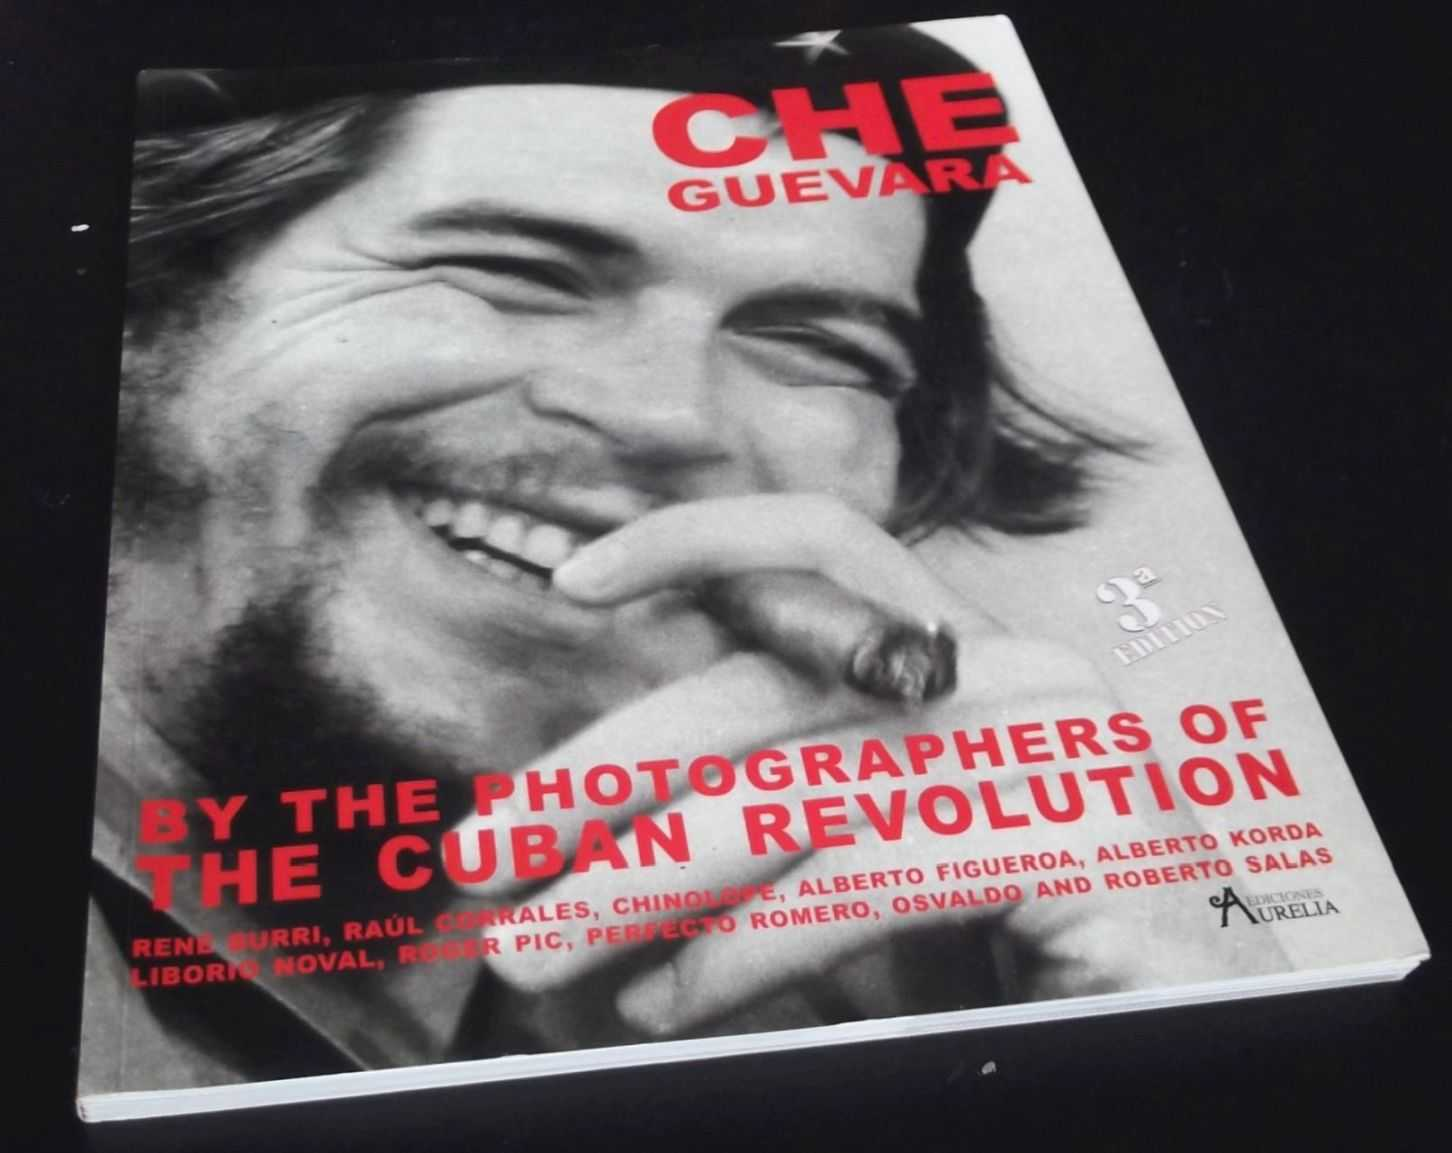 VARIOUS - Che Guevara By the Photographers of the Cuban Revolution